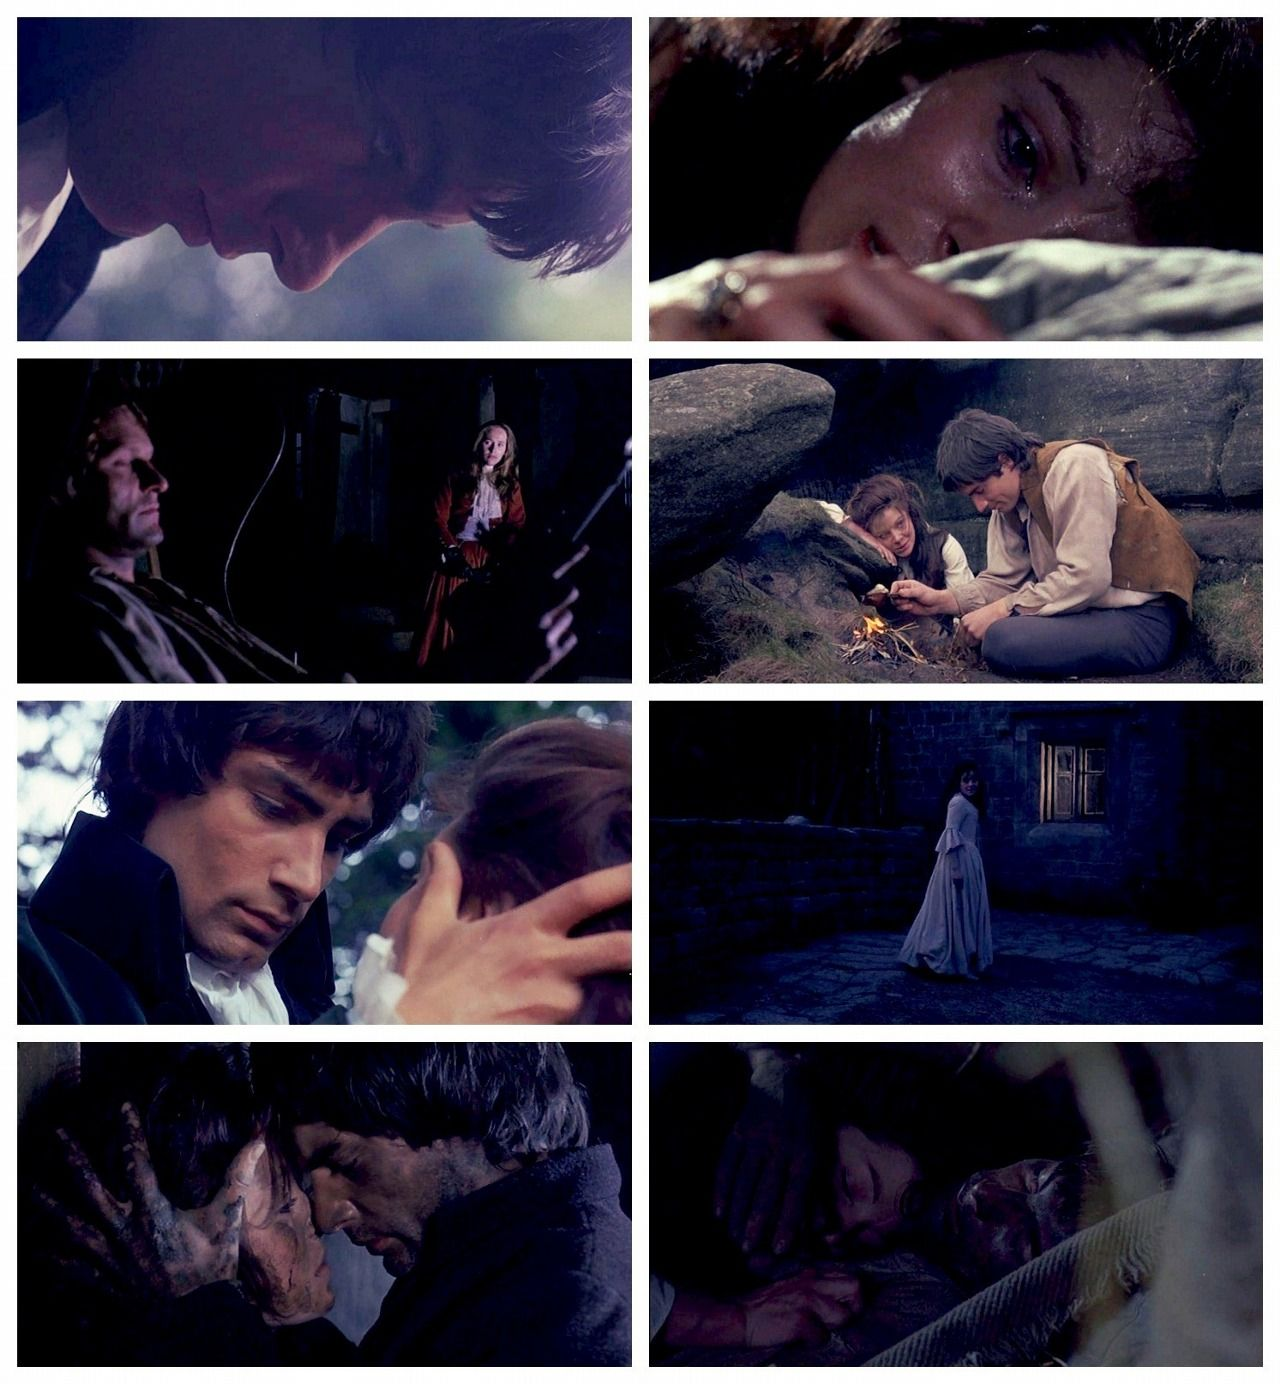 Wuthering Heights 1970 - with Timothy Dalton as Heathcliff and Anna Calder-Marshall as Cathy #Bronte #WutheringHeights